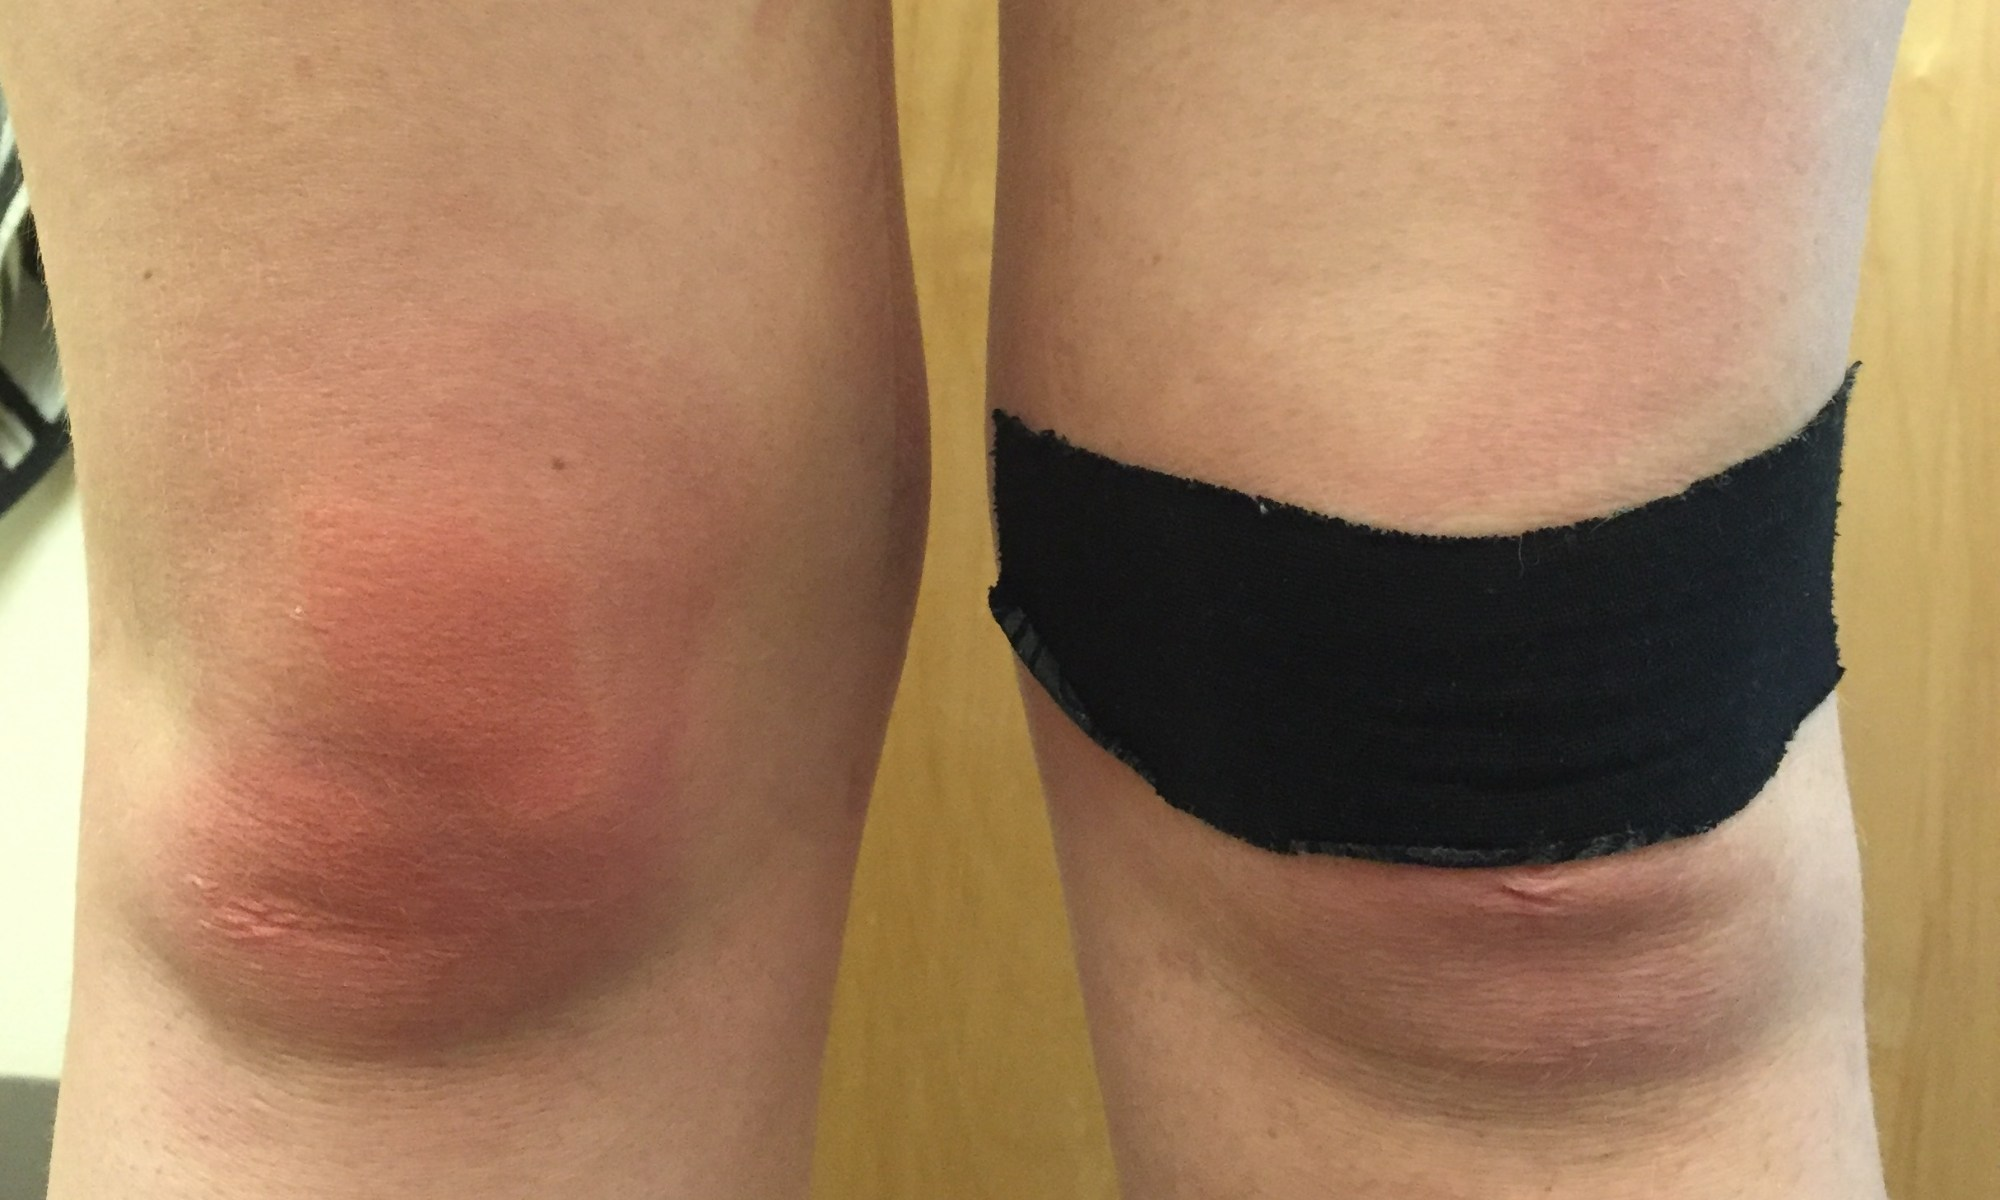 An image of Rowan Walrath's knees, the left one with a strip of black kinesiology tape on it.